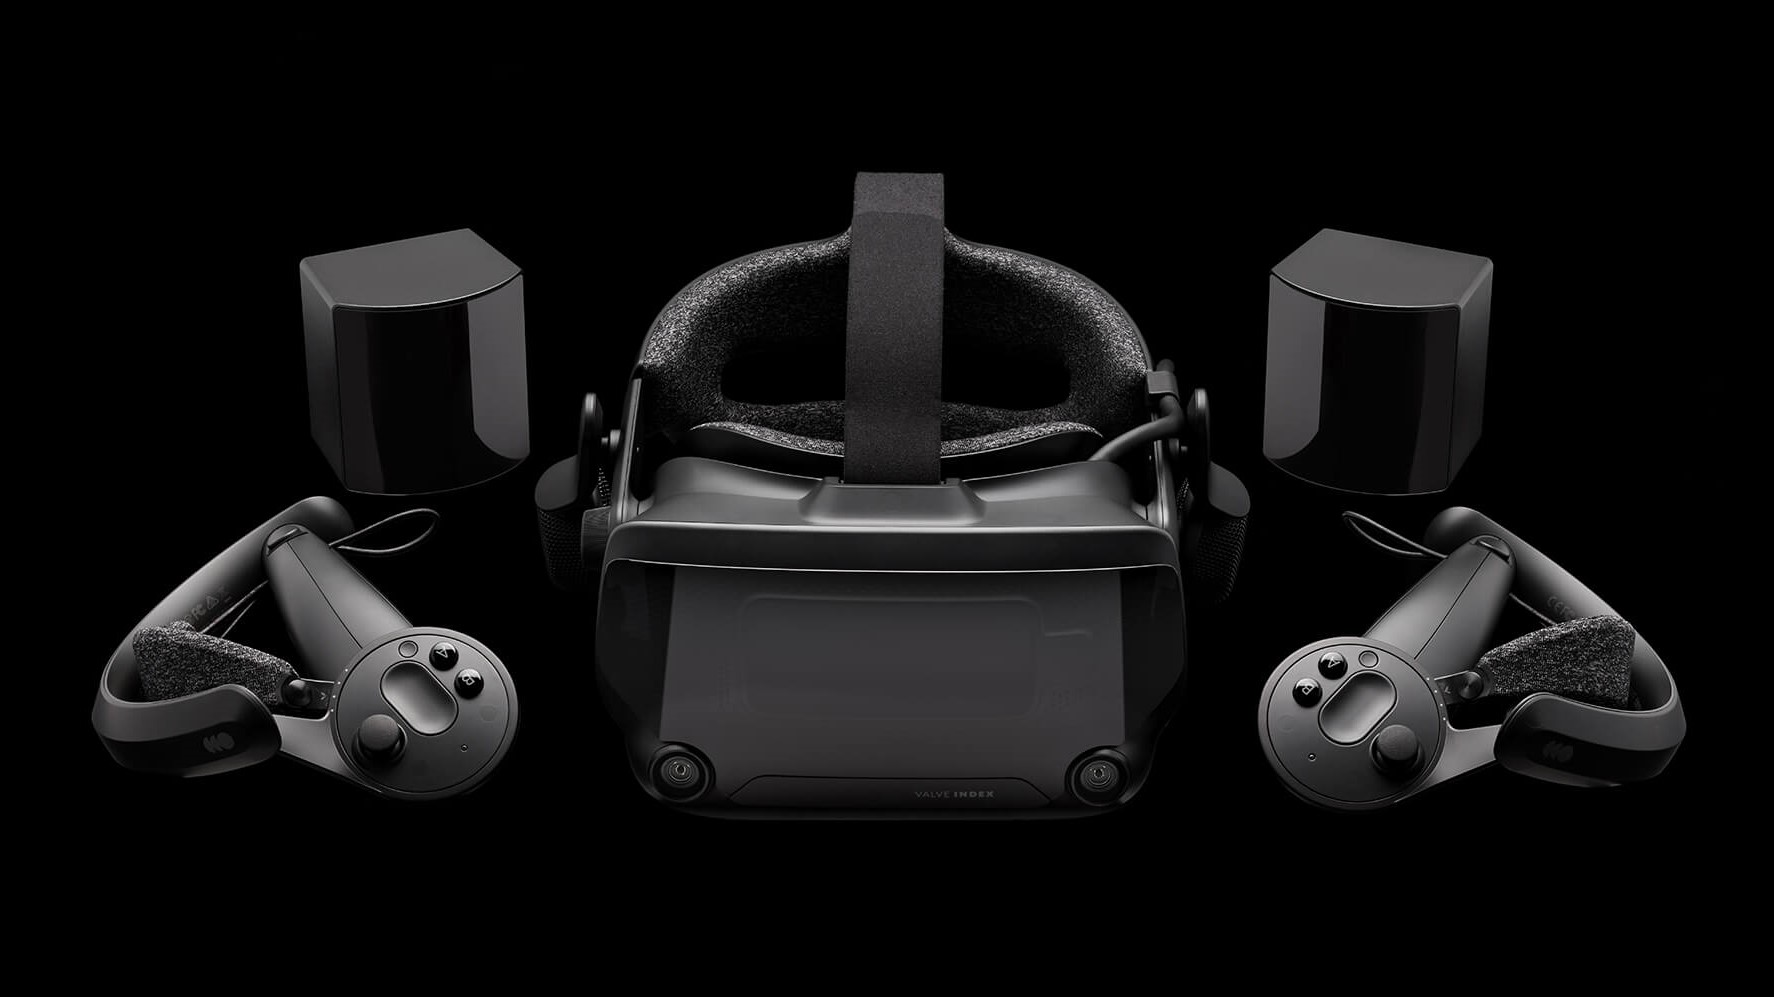 Valve Index VR headset has sold out everywhere – is this a problem for Half-Life: Alyx?